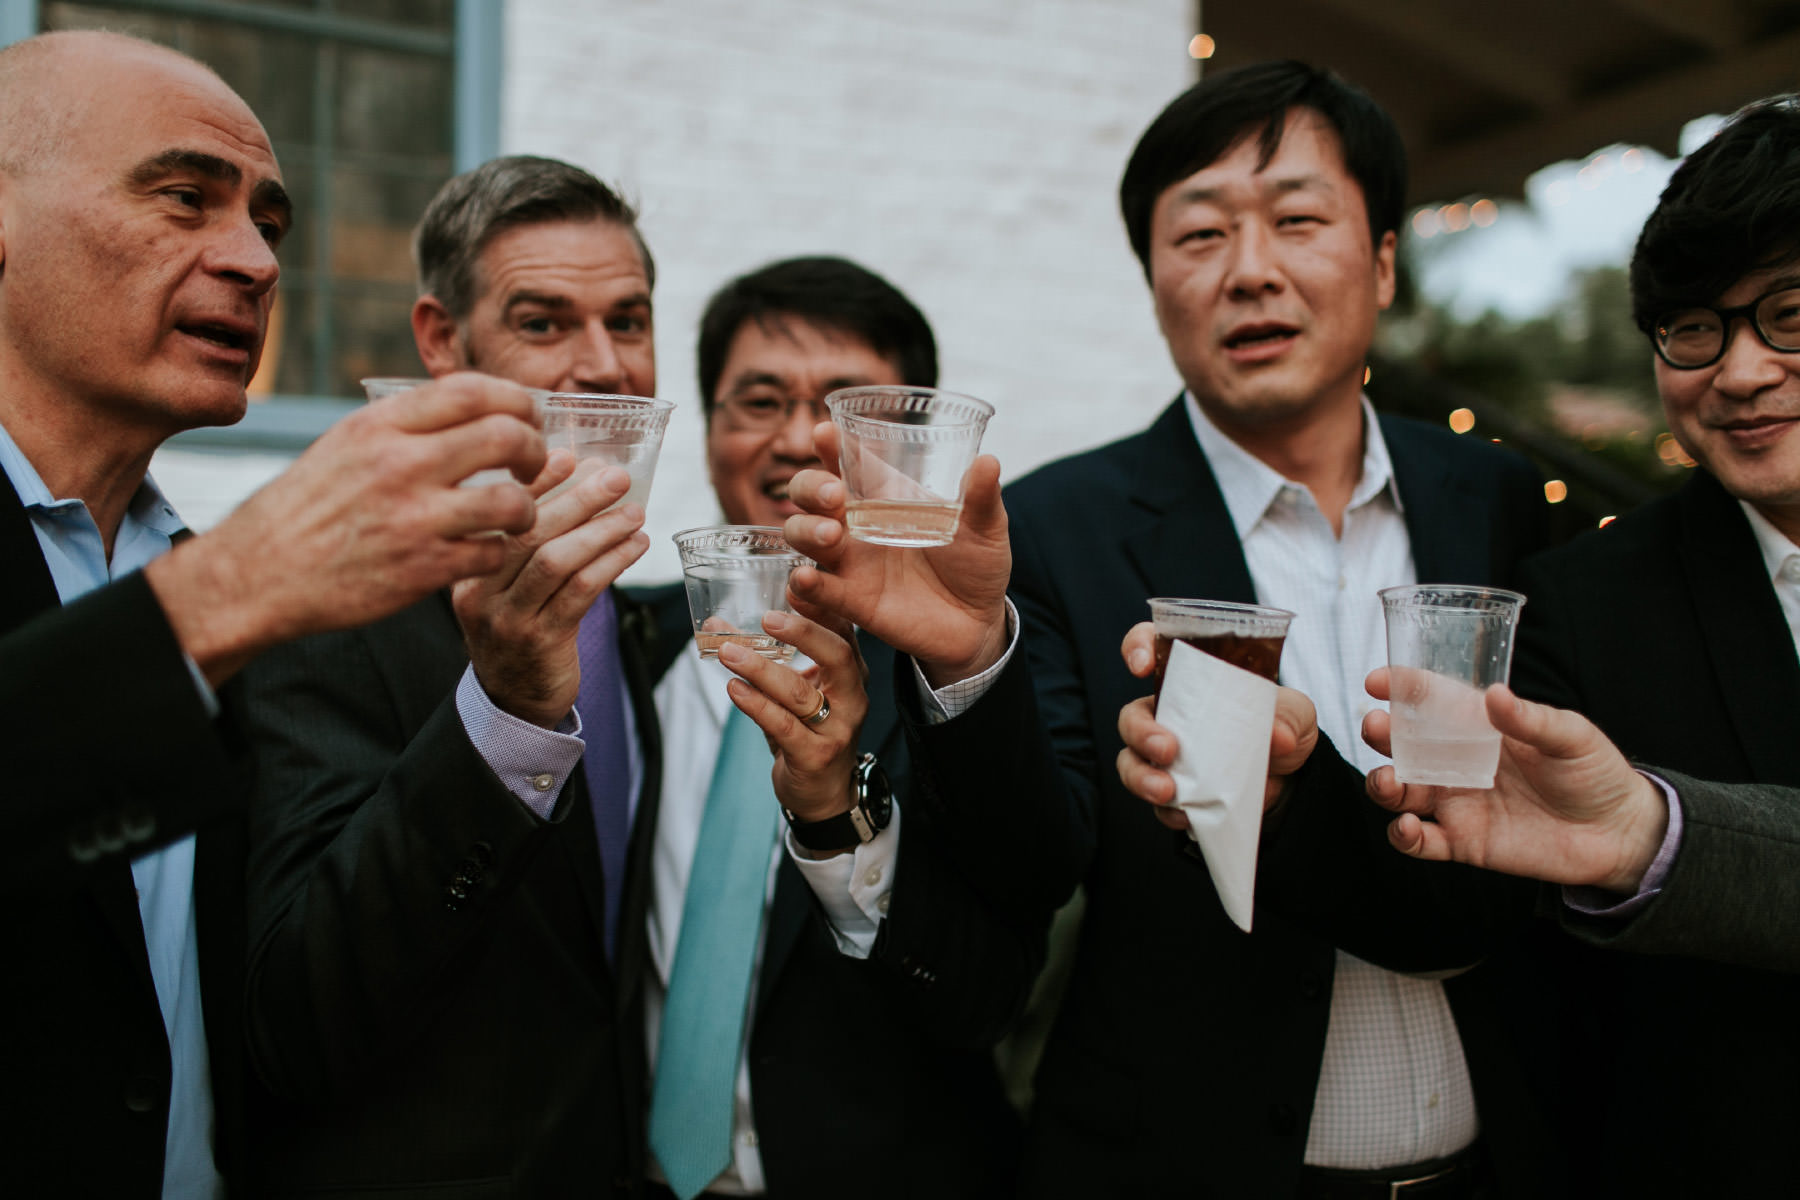 Groom and wedding guests cheersing with shots